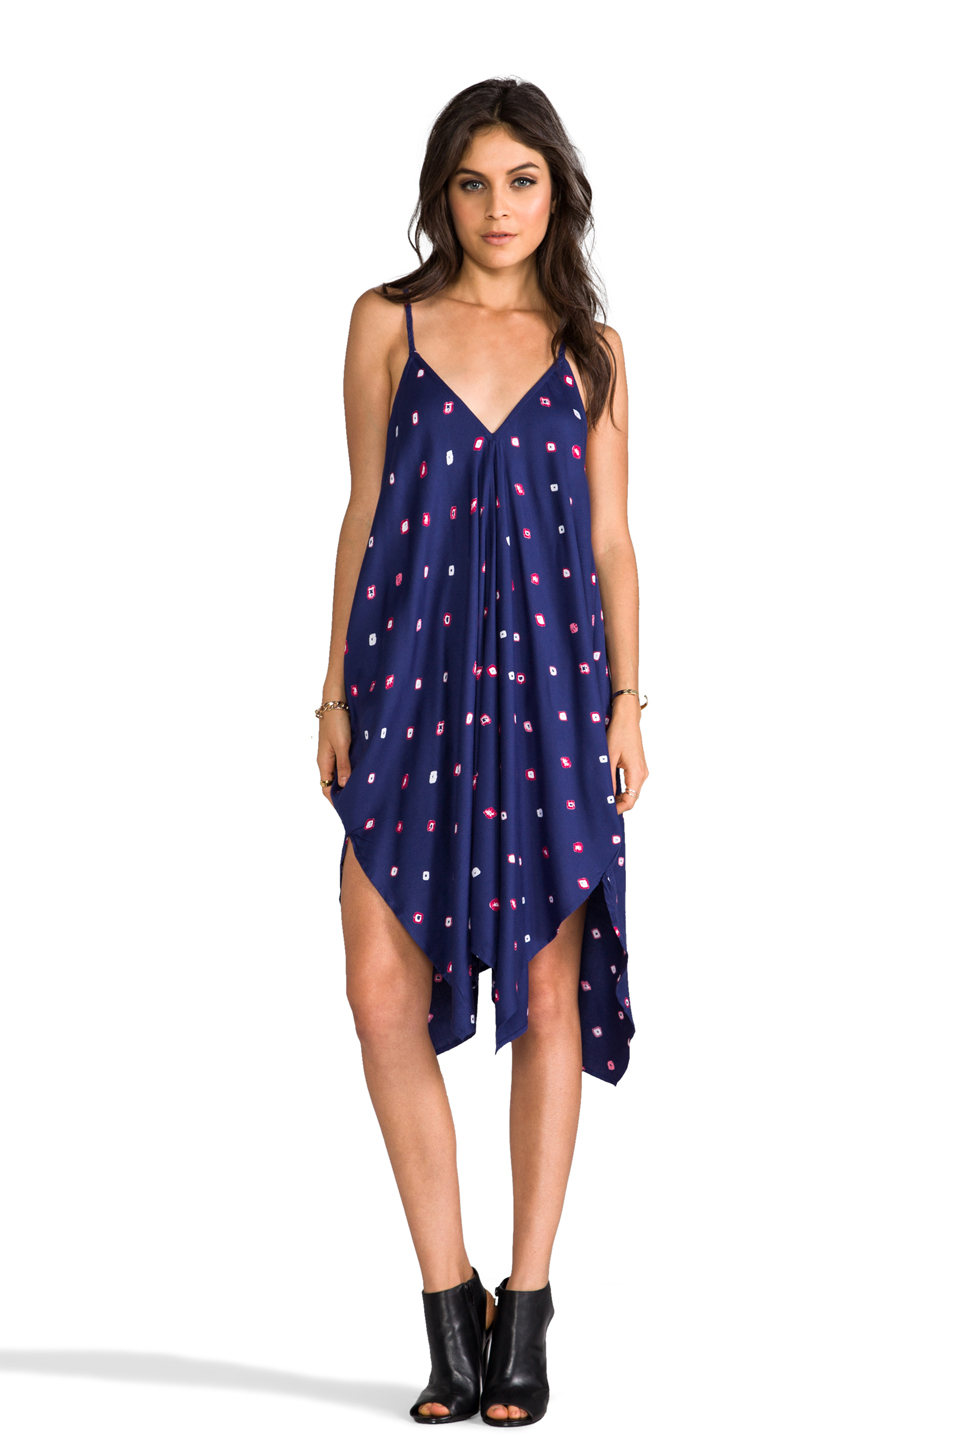 Tigerlily Archa Dress in Indigo | REVOLVE